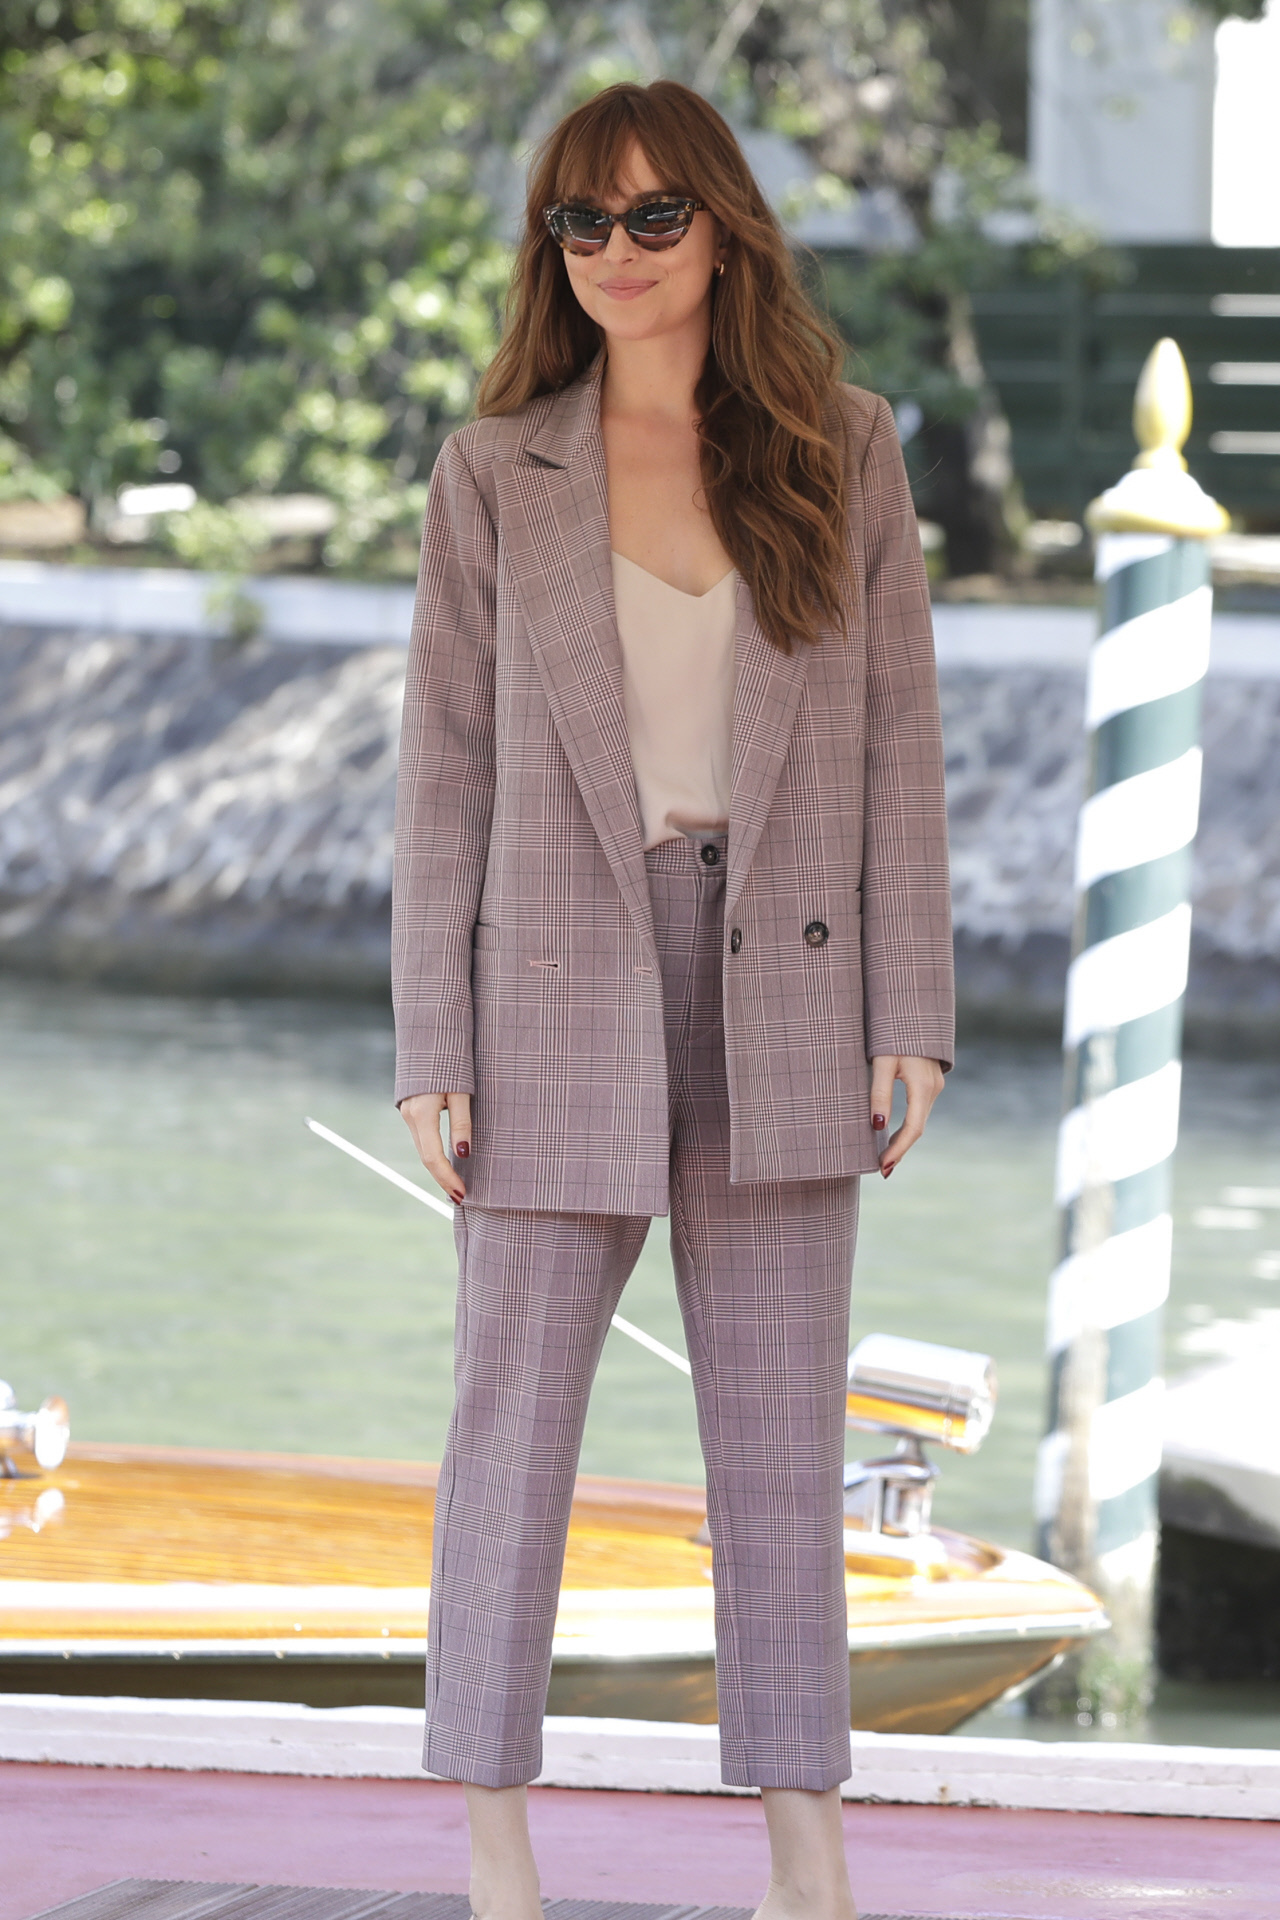 Dakota Johnson in a tailored suit and matching top